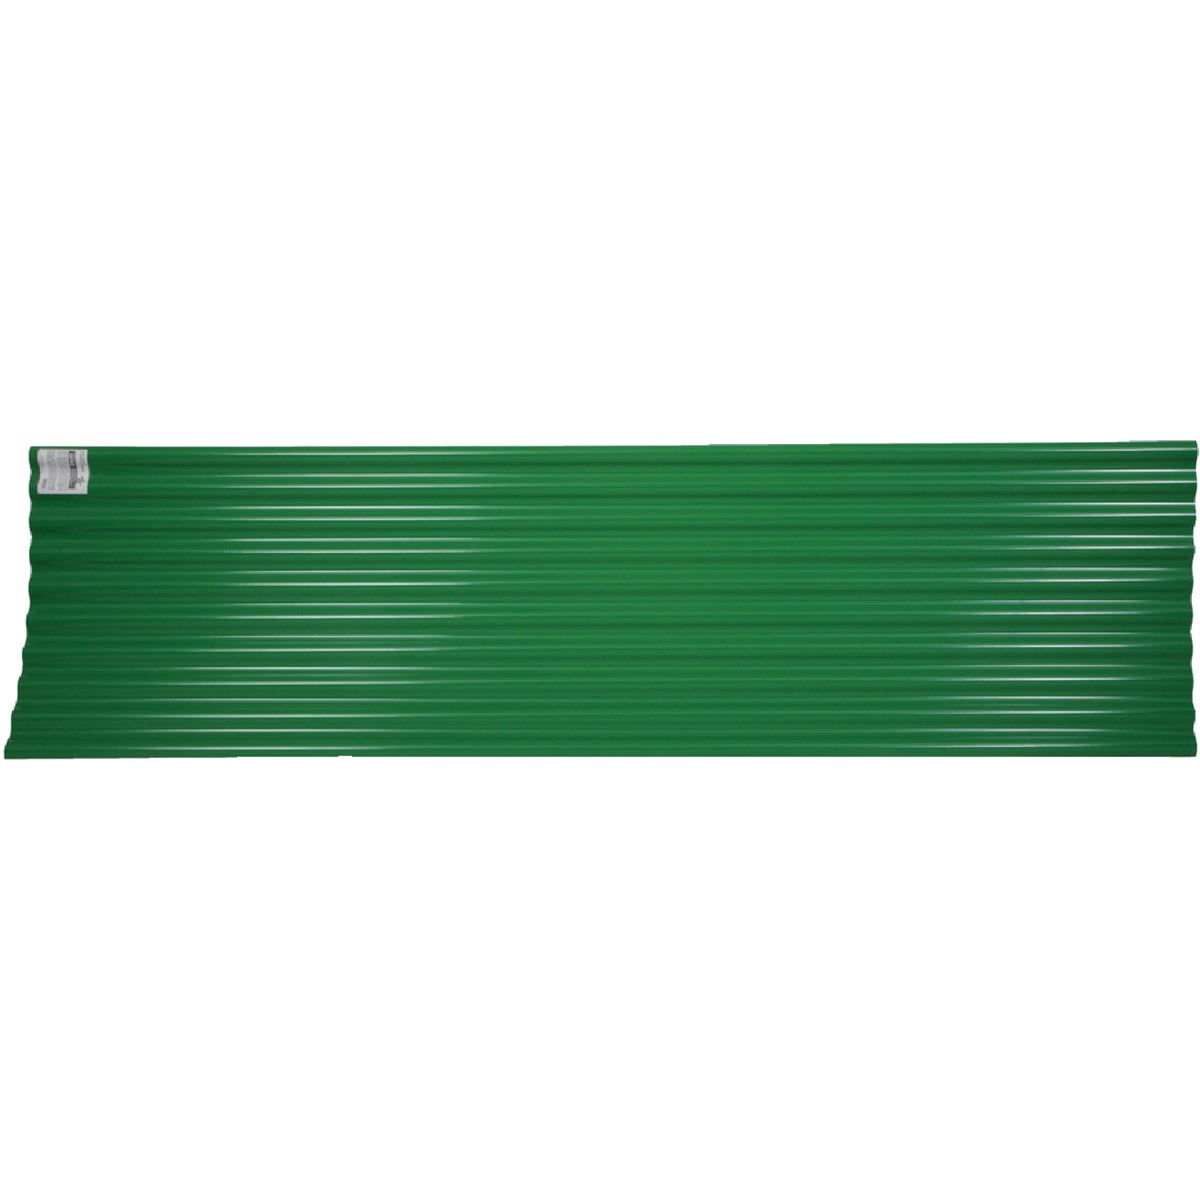 8' GRN CORGTD PVC PANEL - 120214 by Ofic North America